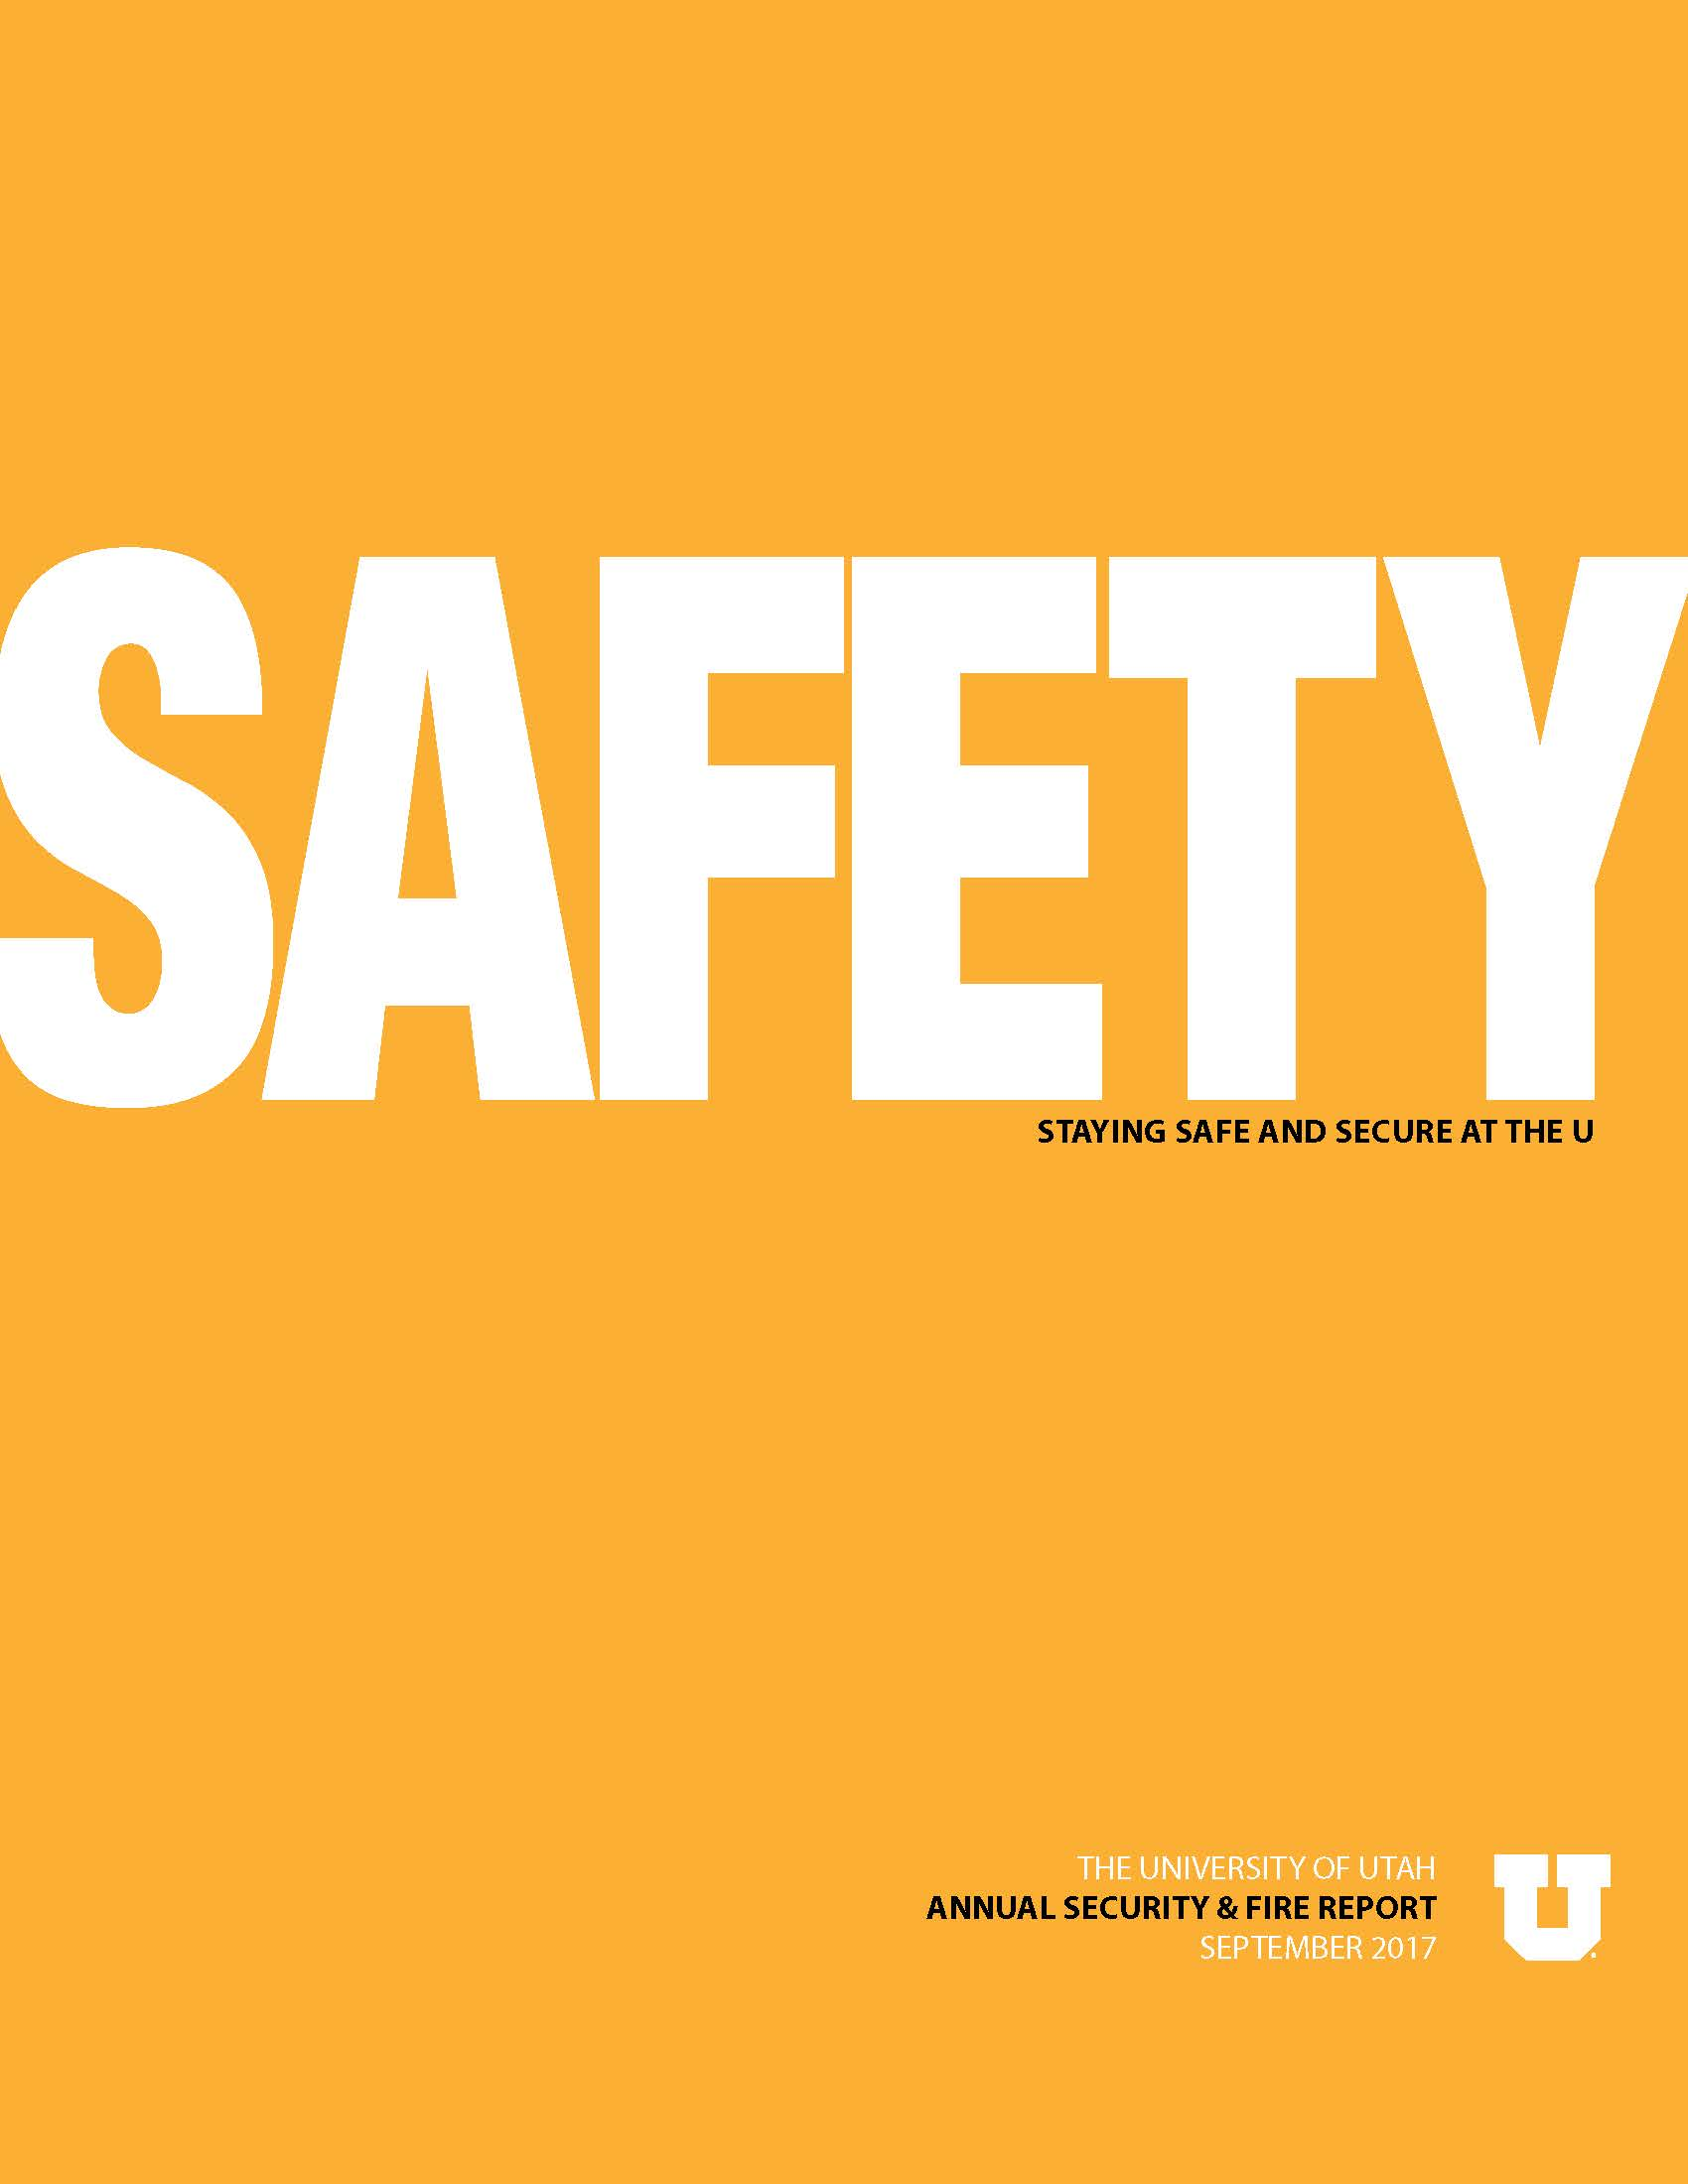 https://dps.utah.eduwp-content/uploads/sites/24/sites/3/2016/09/17-0173-2016-17-Fire-Safety-Clery-Report-v4.pdf